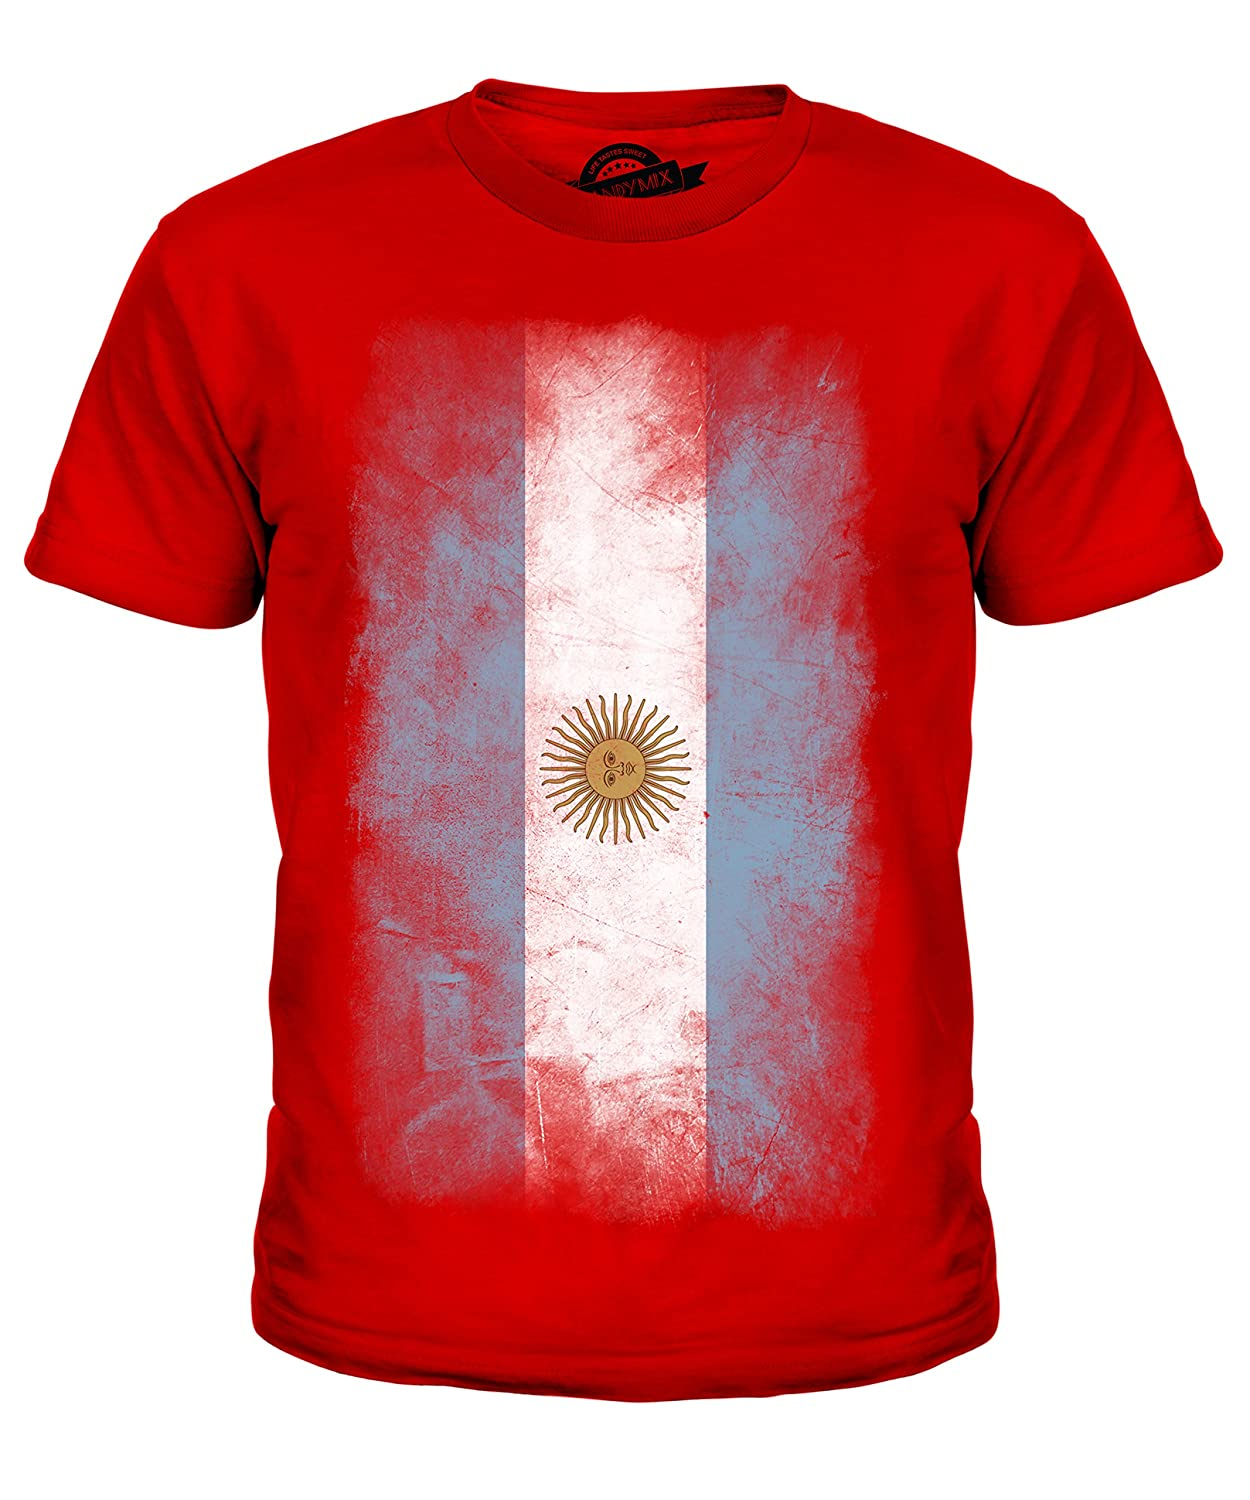 30b389c1f8fad Candymix Argentina Faded Flag Unisex Kids T Shirt  Boys/Girls/Toddler/Children T-Shirt: Amazon.co.uk: Clothing